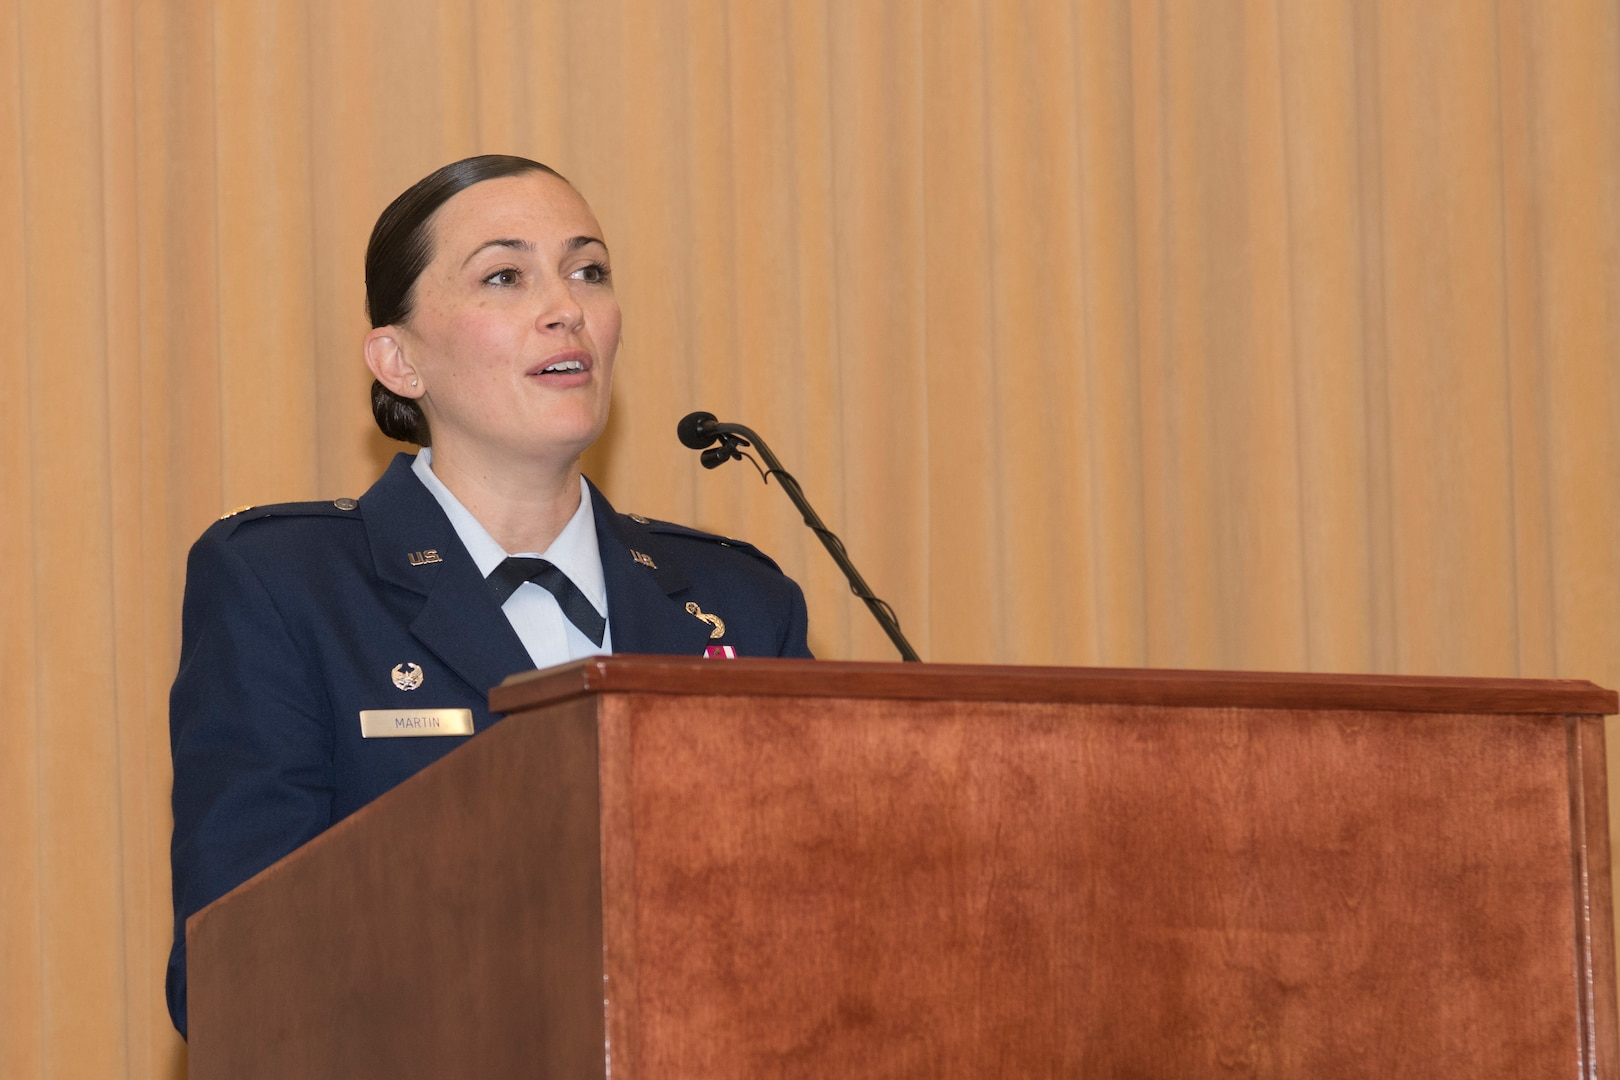 An Airman speaks while standing at a podium